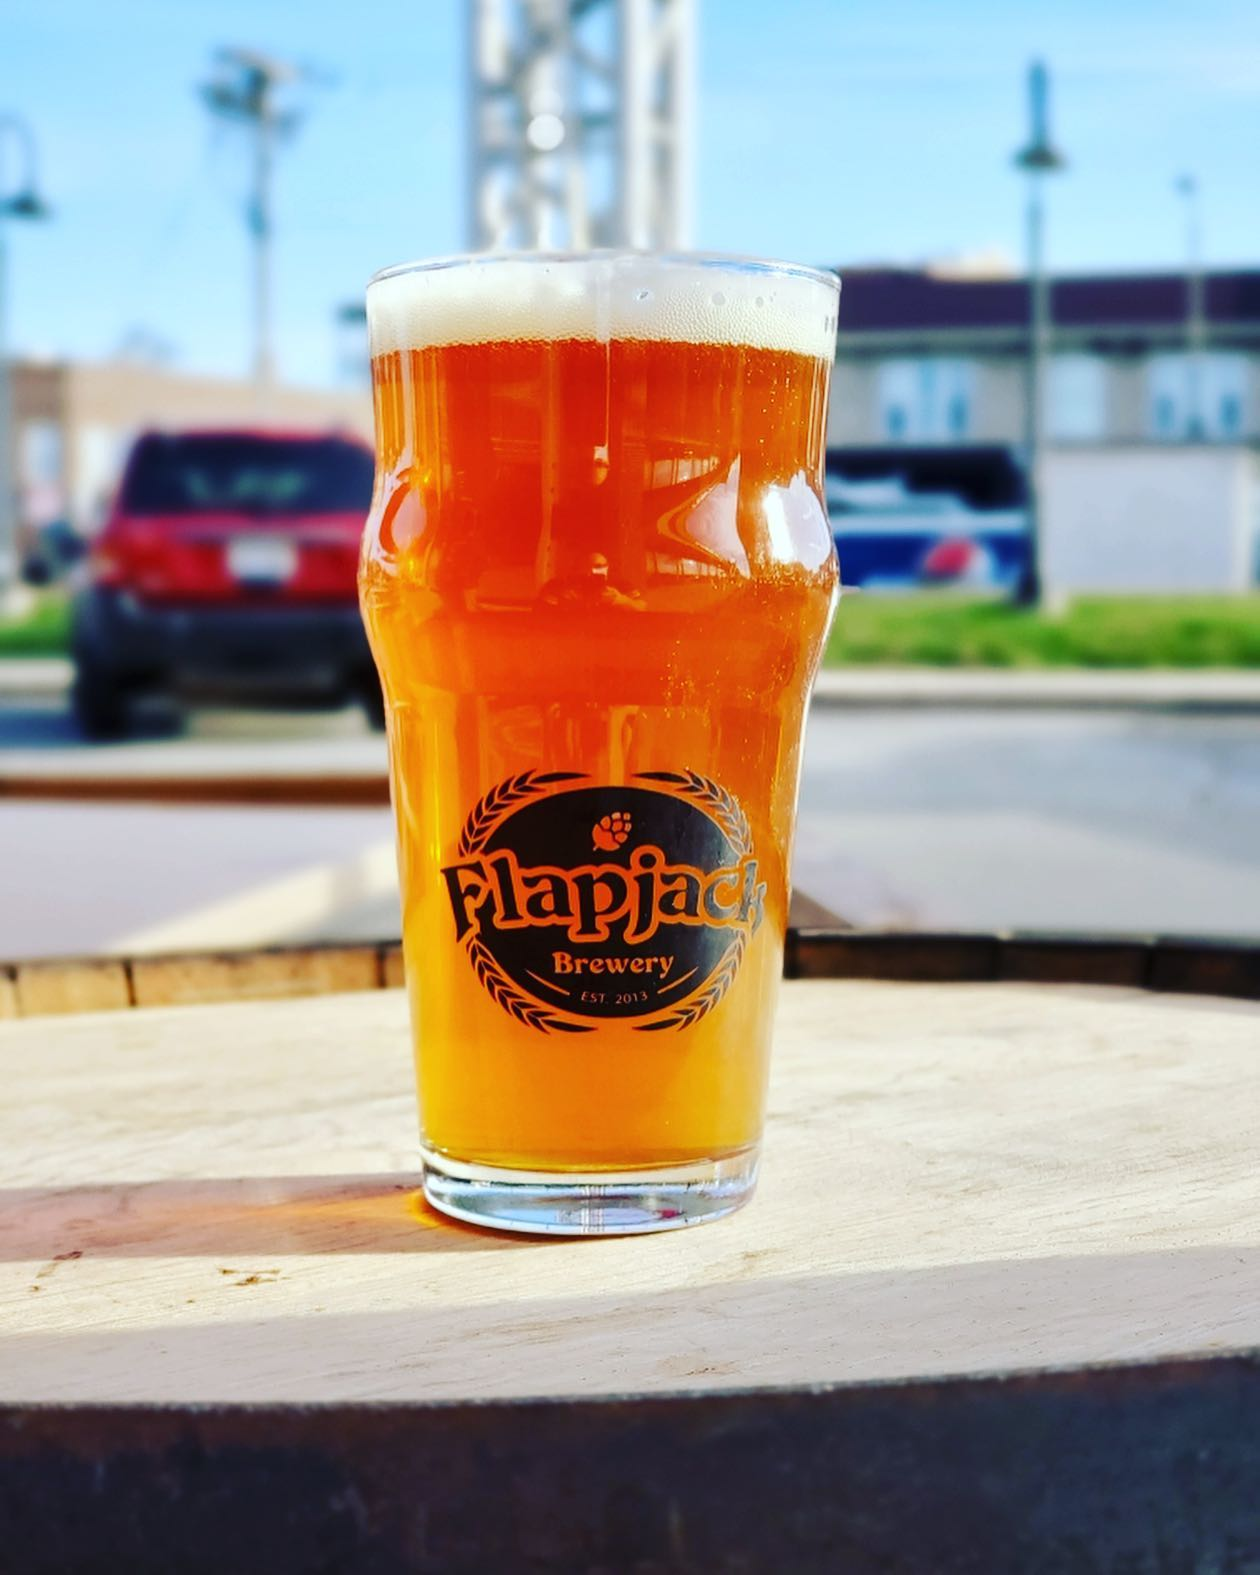 A glass of SchmuckJack IPA from Flapjack Brewery